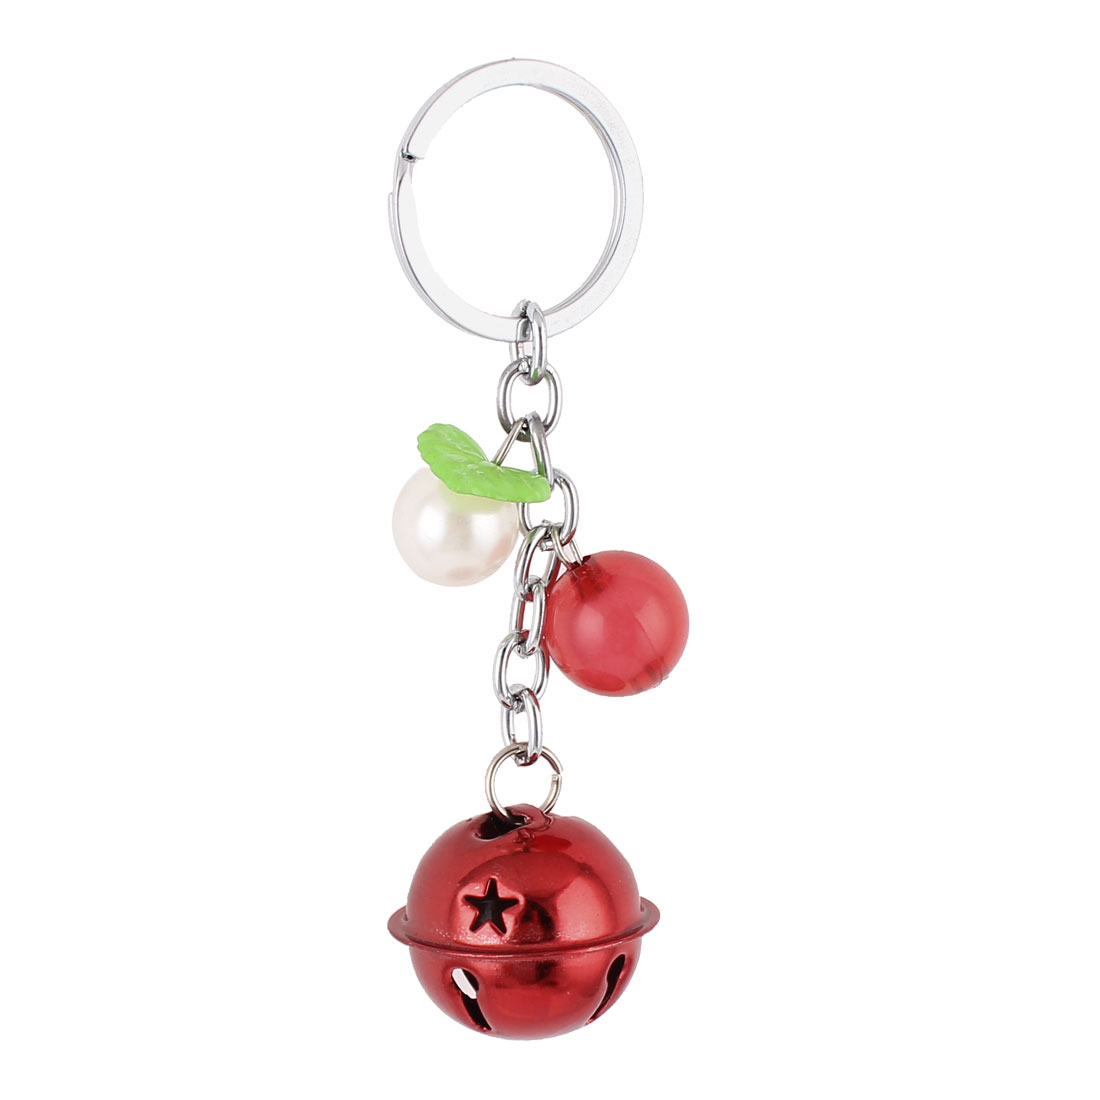 Bells Beads Detail Split Ring Keyring Keychain Key Holder Bag Purse Ornament Red White